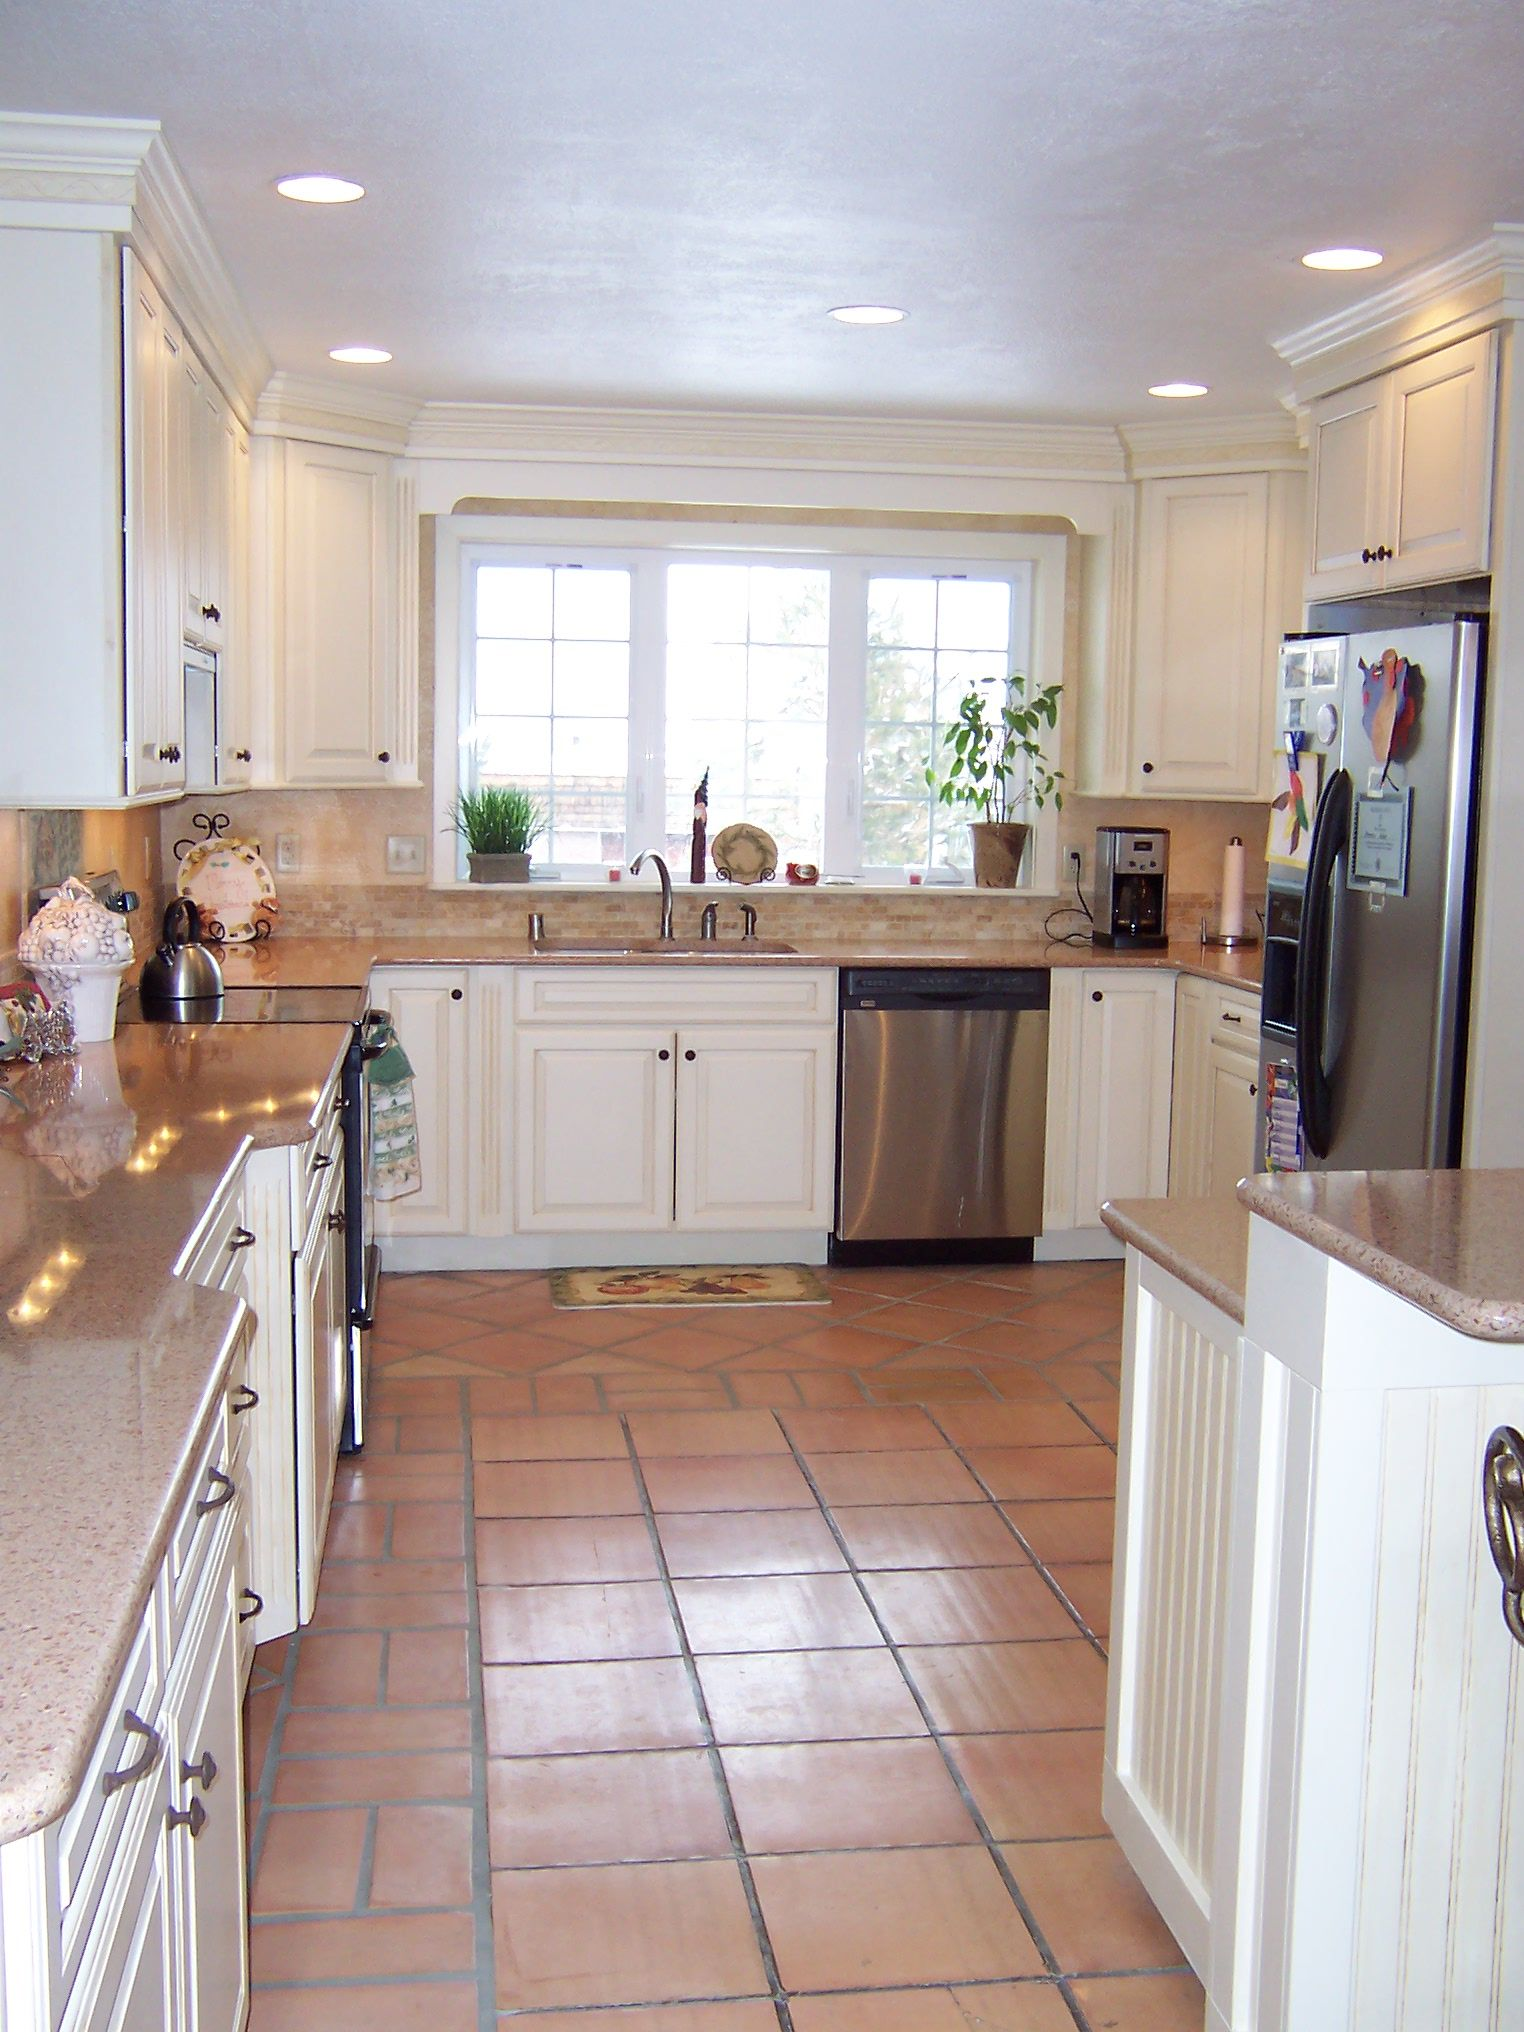 White Kitchen Saltillo Tile Google Search Kitchen Design Kitchen Inspiration Design Kitchen Floor Tile